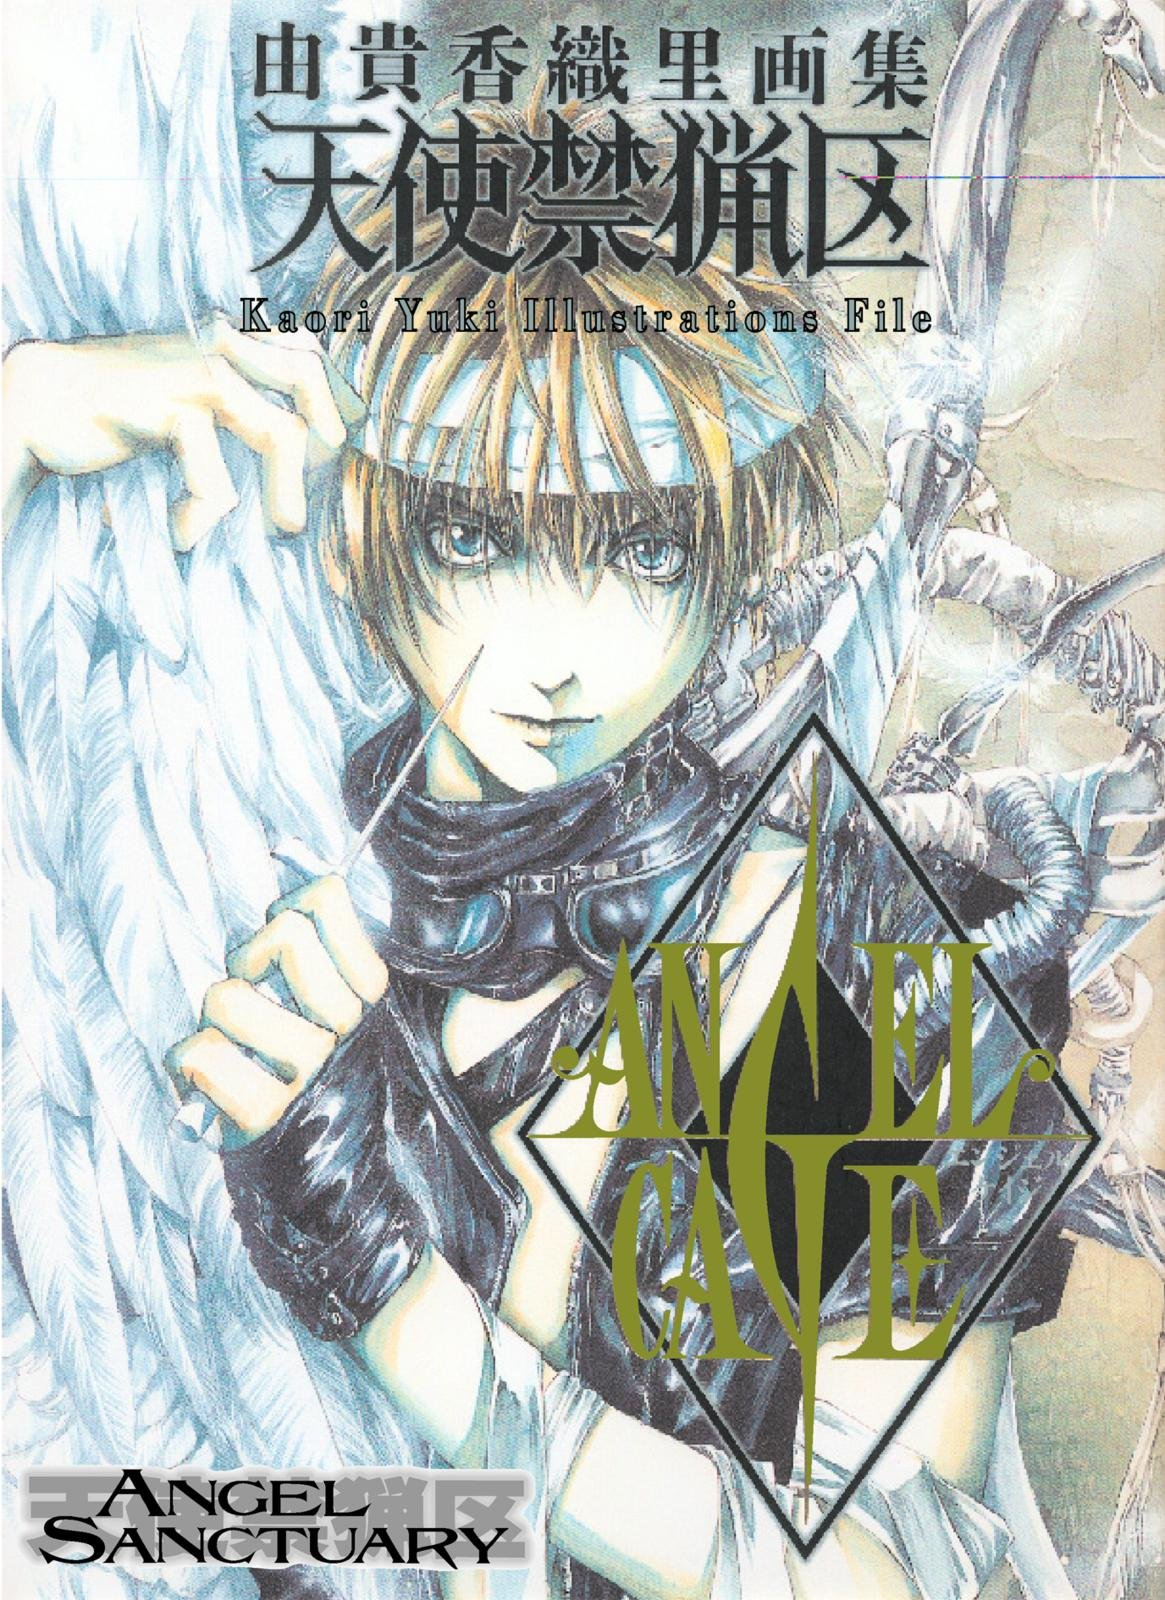 Angel Sanctuary Artbook. Angel Cage. (Allemand) Broché – 31 mai 2002 Lion Feuchtwanger Carlsen Verlag GmbH 3551764735 Belletristik